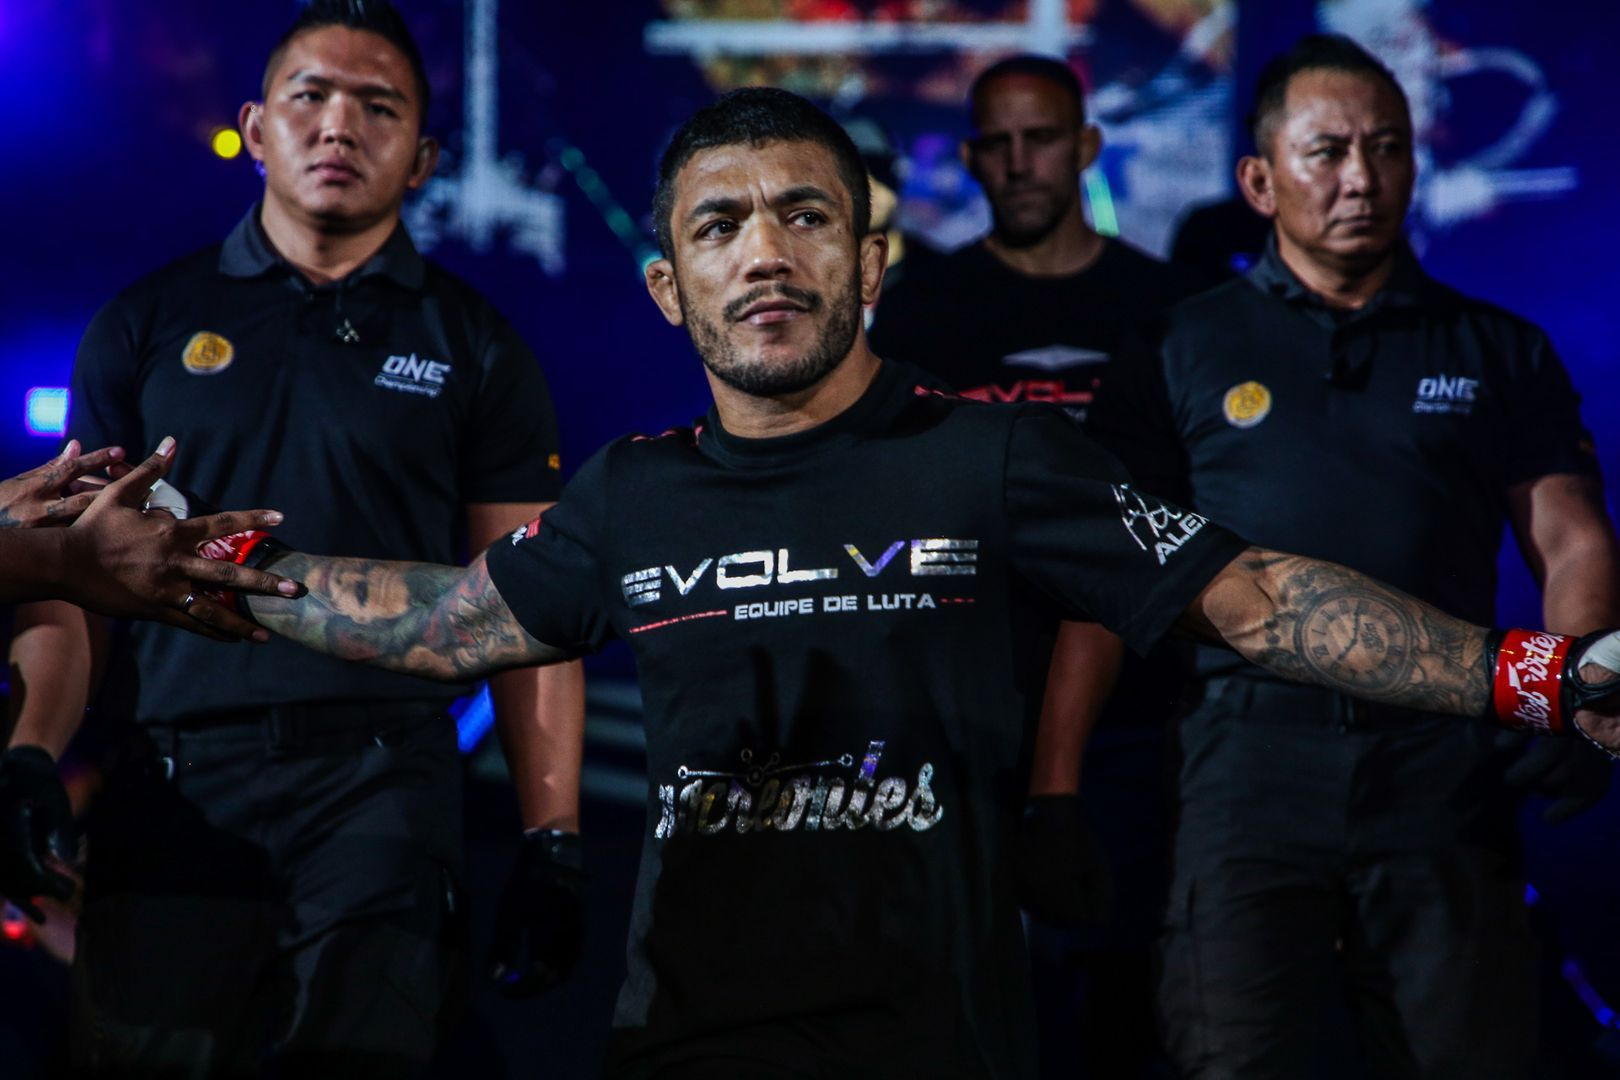 Brazilian martial arts star Alex Silva enters the Singapore Indoor Stadium